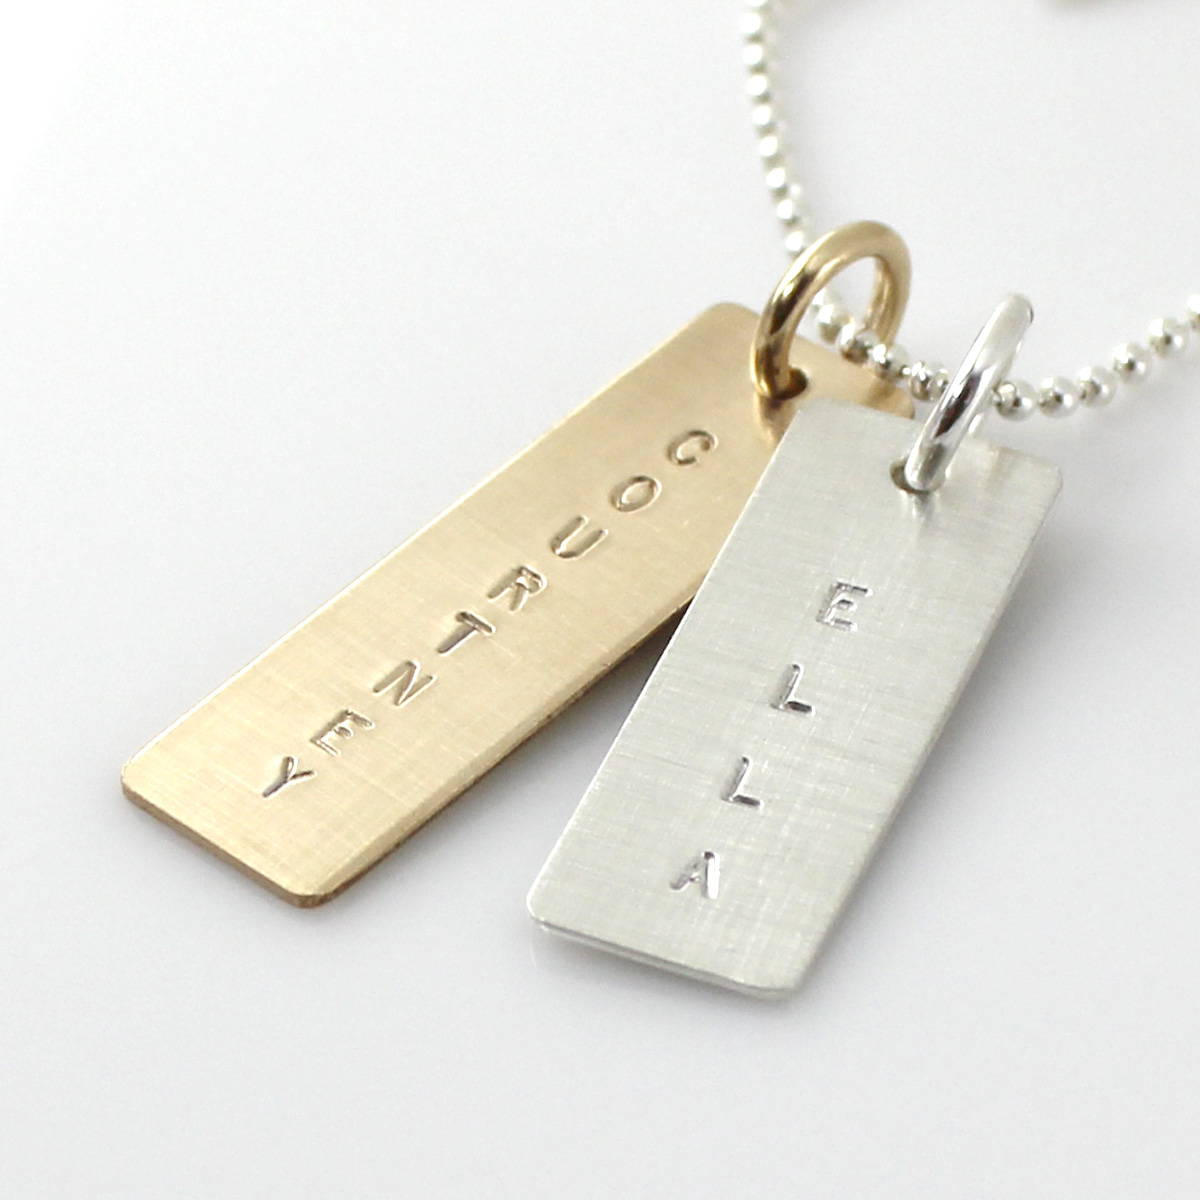 Mixed Metal Name Tag Necklace - Varied Length, Long Gold-Filled